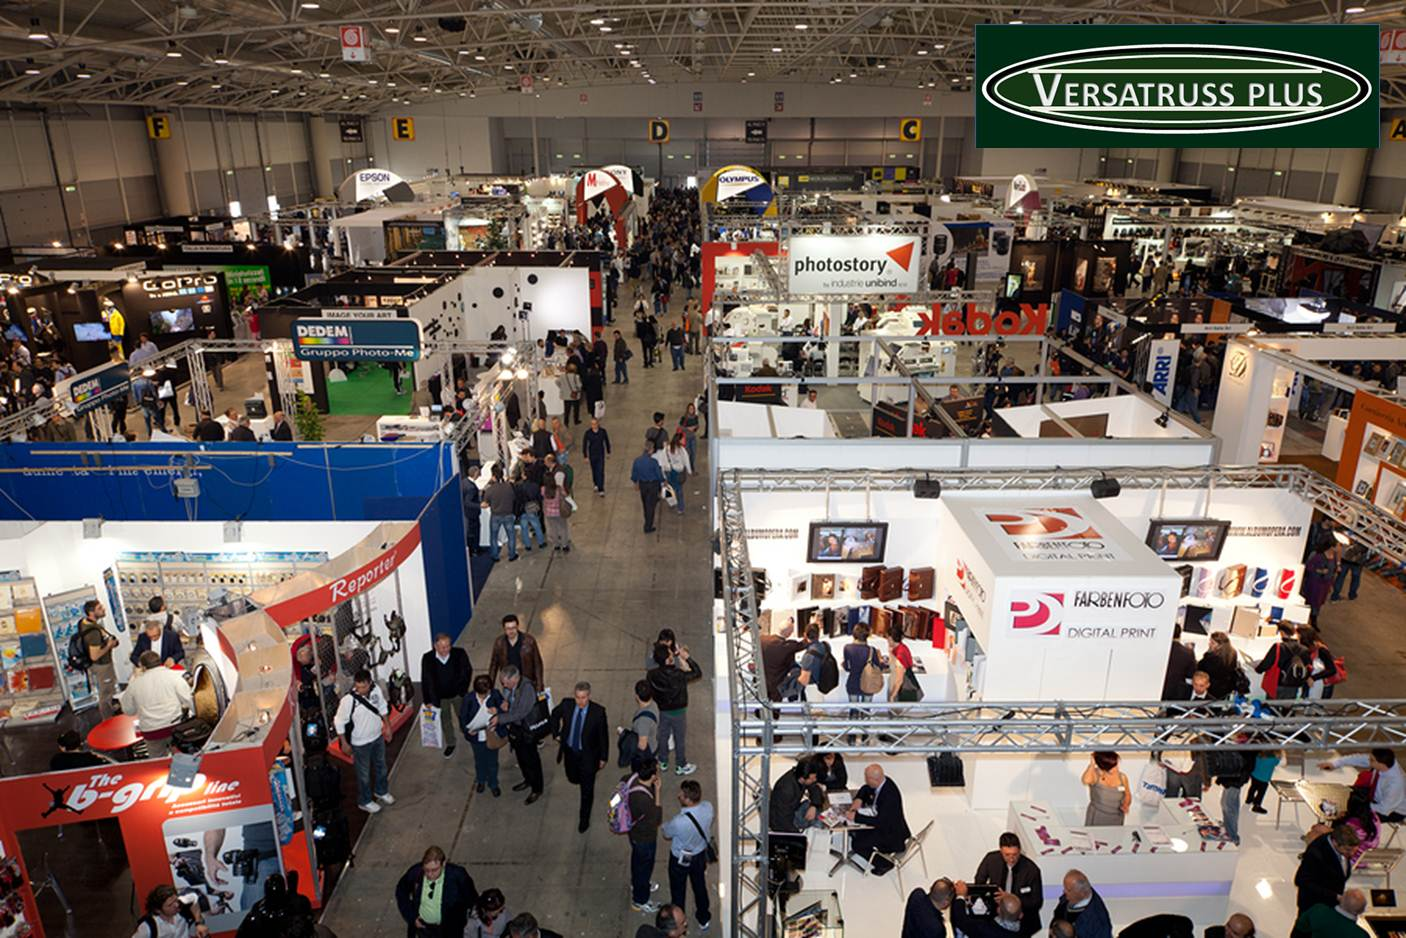 Exhibition Booth Meaning : Exhibit systems versatruss plus